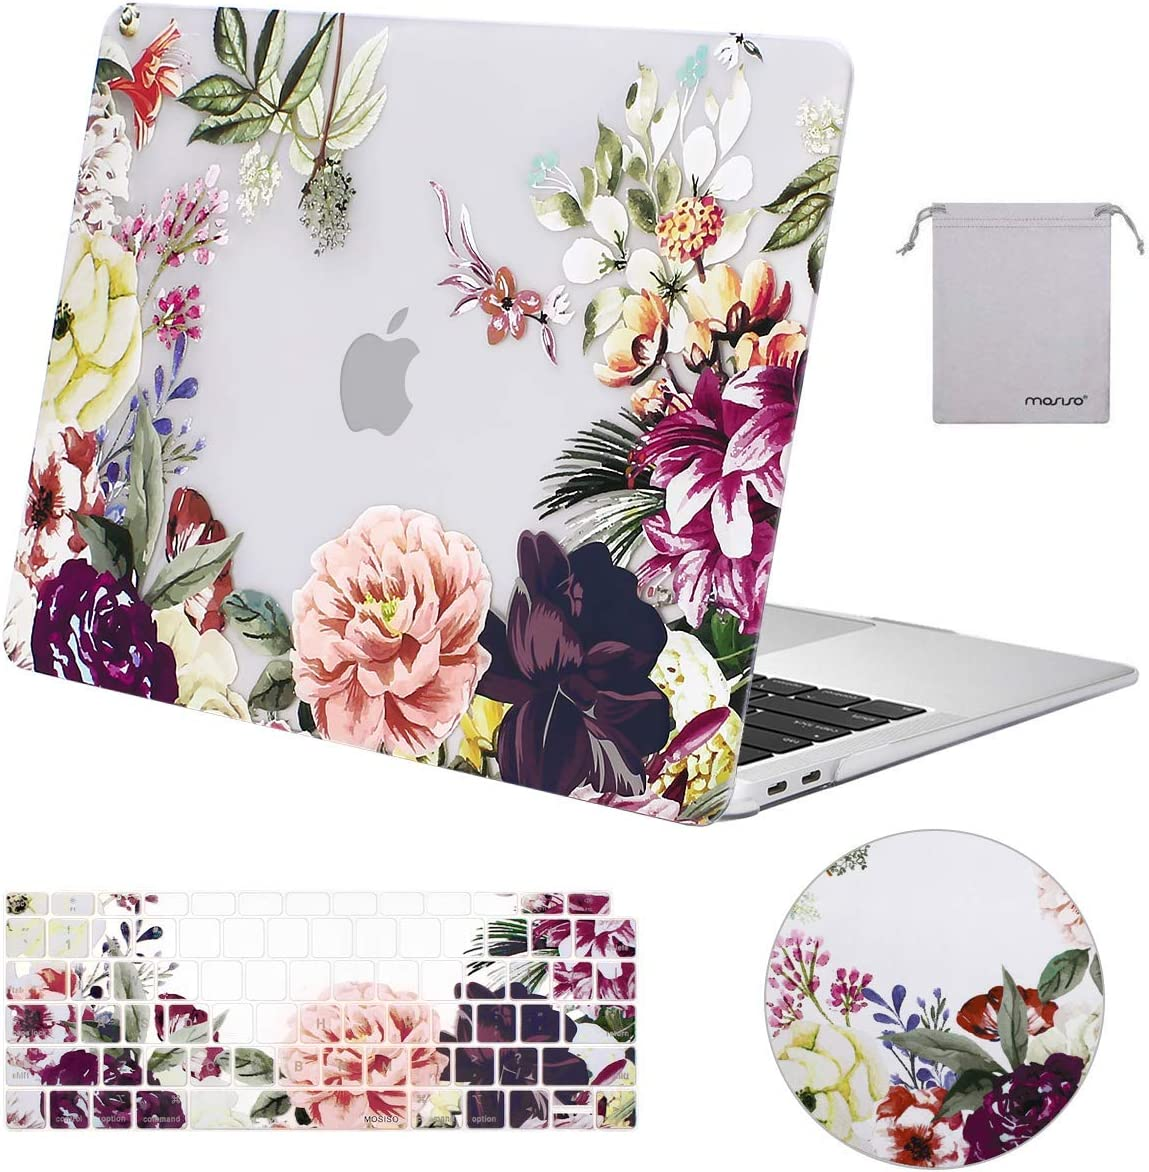 MOSISO MacBook Air 13 Inch Case 2019 2018 Release A1932 with Retina Display Plastic Pattern Hard Shell /& Keyboard Cover /& Mouse Pad /& Storage Bag Only Compatible with MacBook Air 13 Rose Leaves